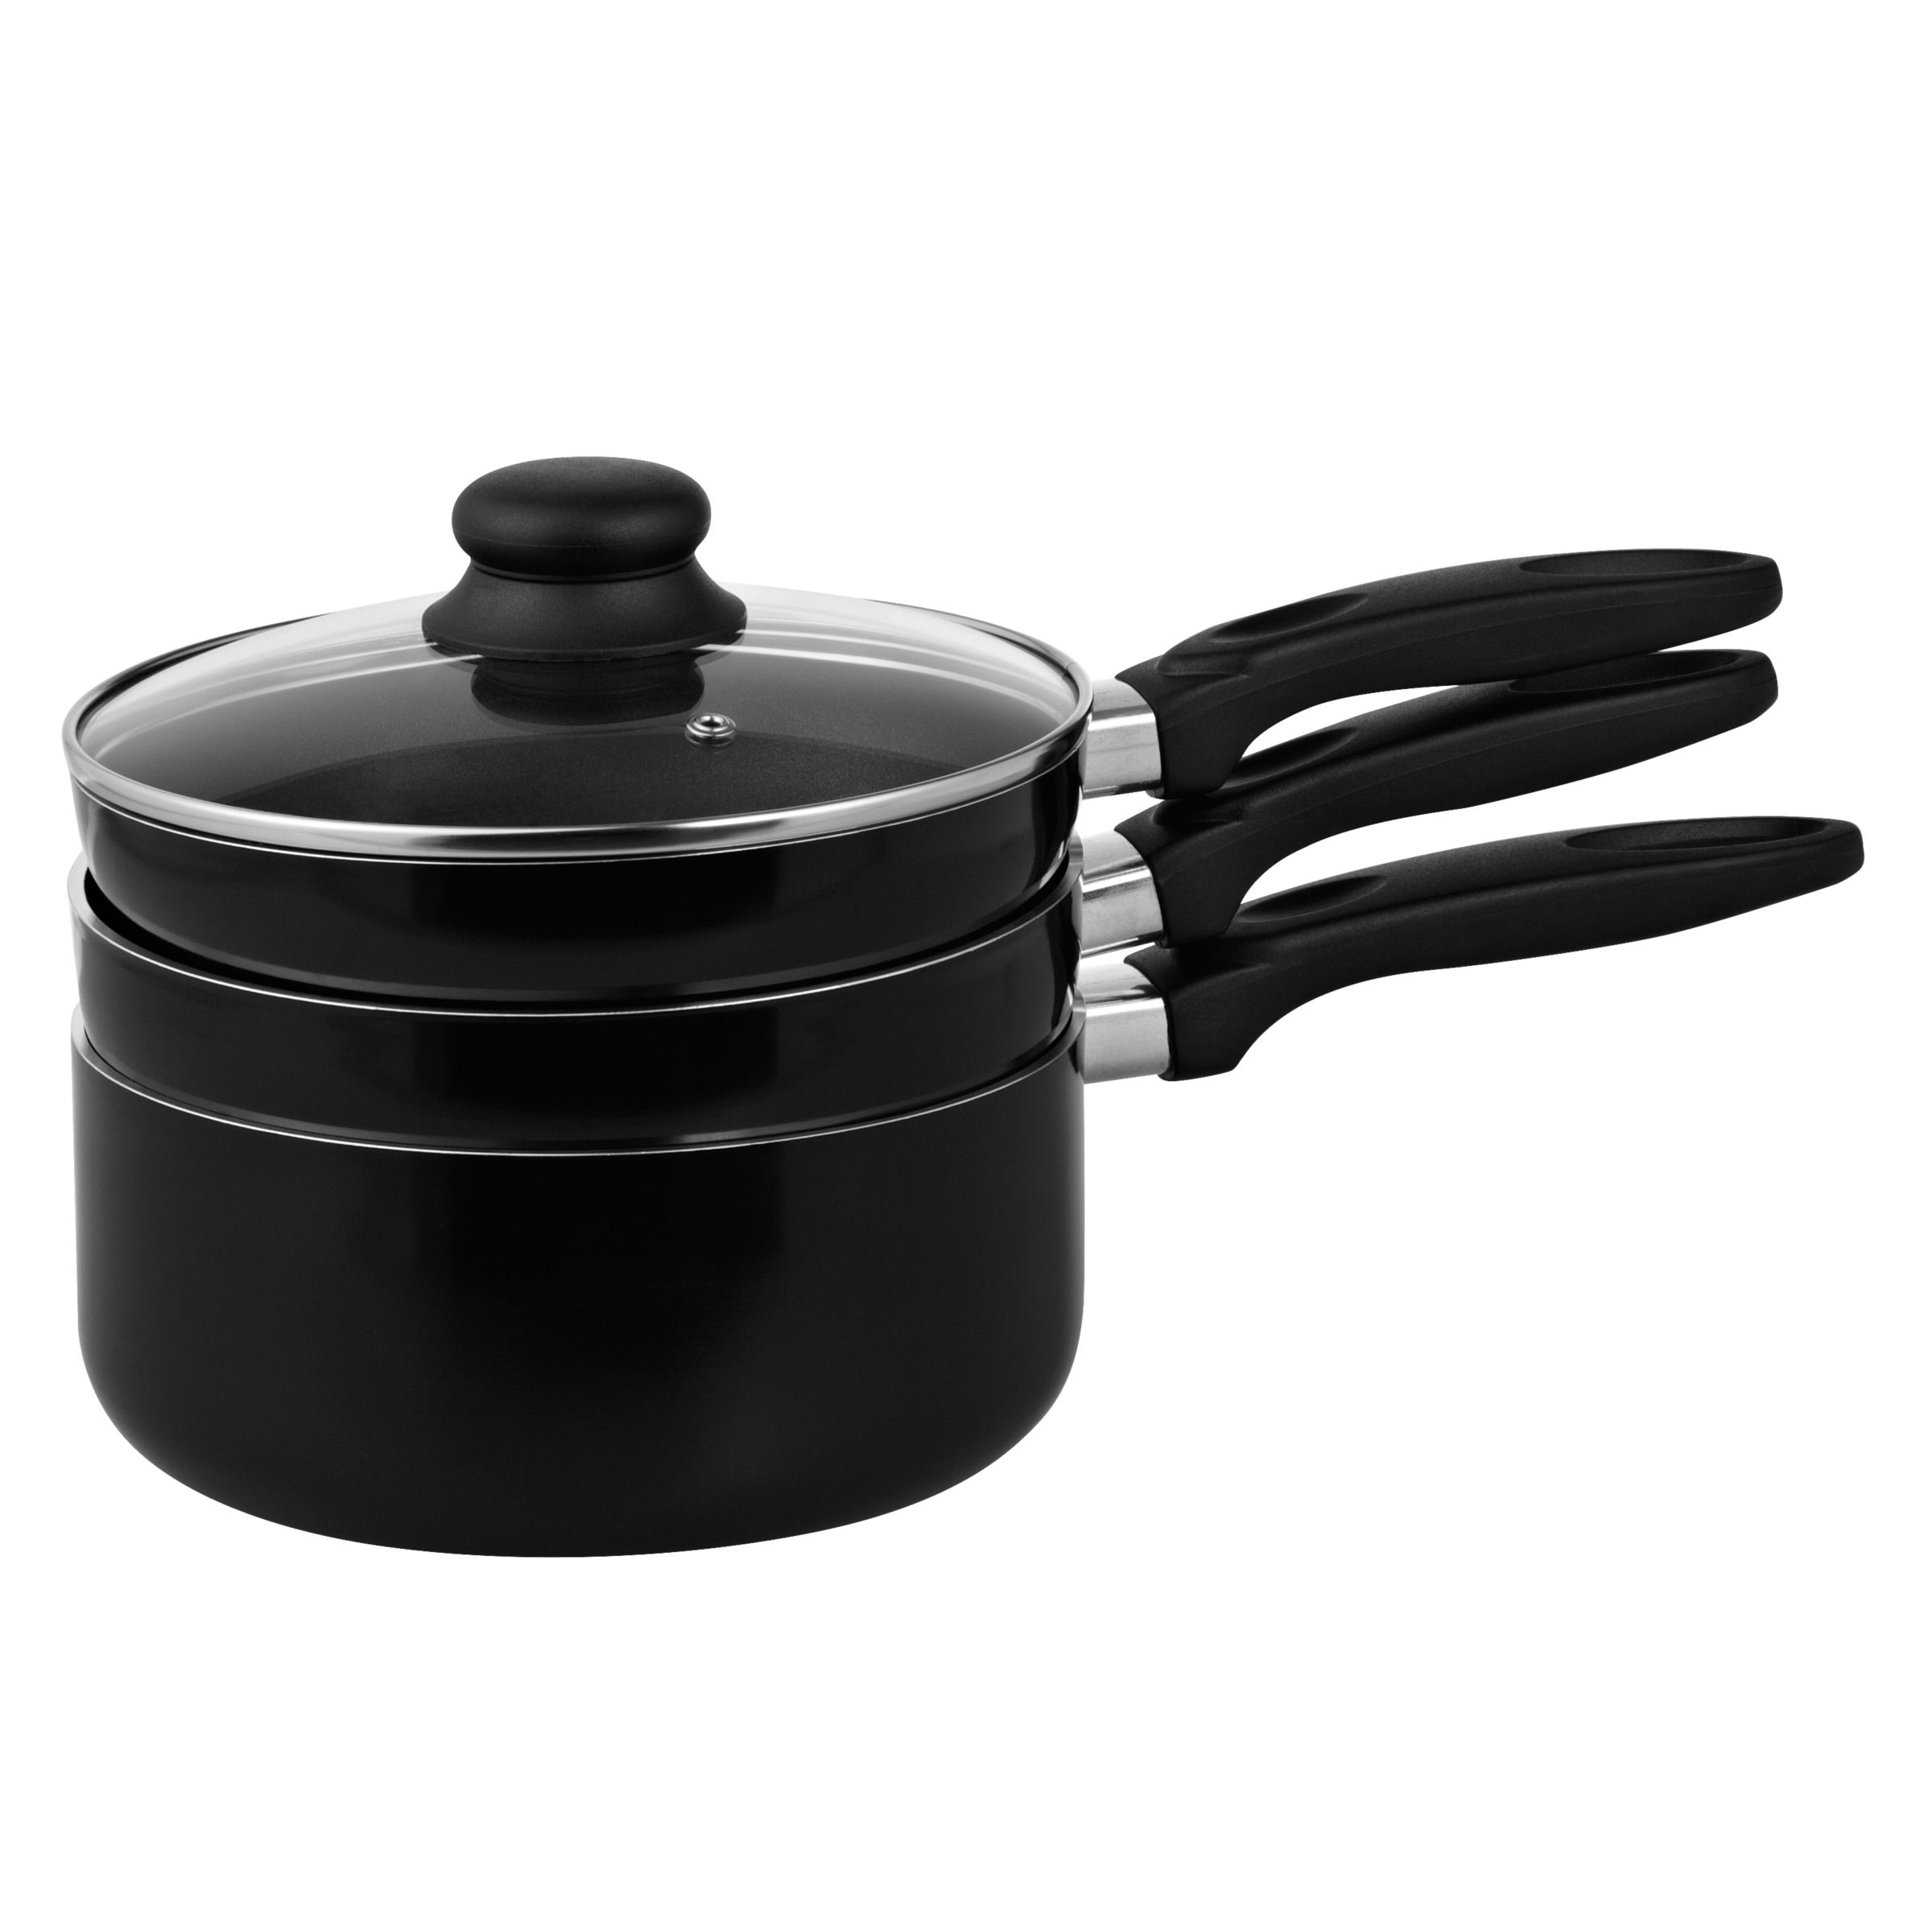 induction pan set shop for cheap cookware utensils and. Black Bedroom Furniture Sets. Home Design Ideas